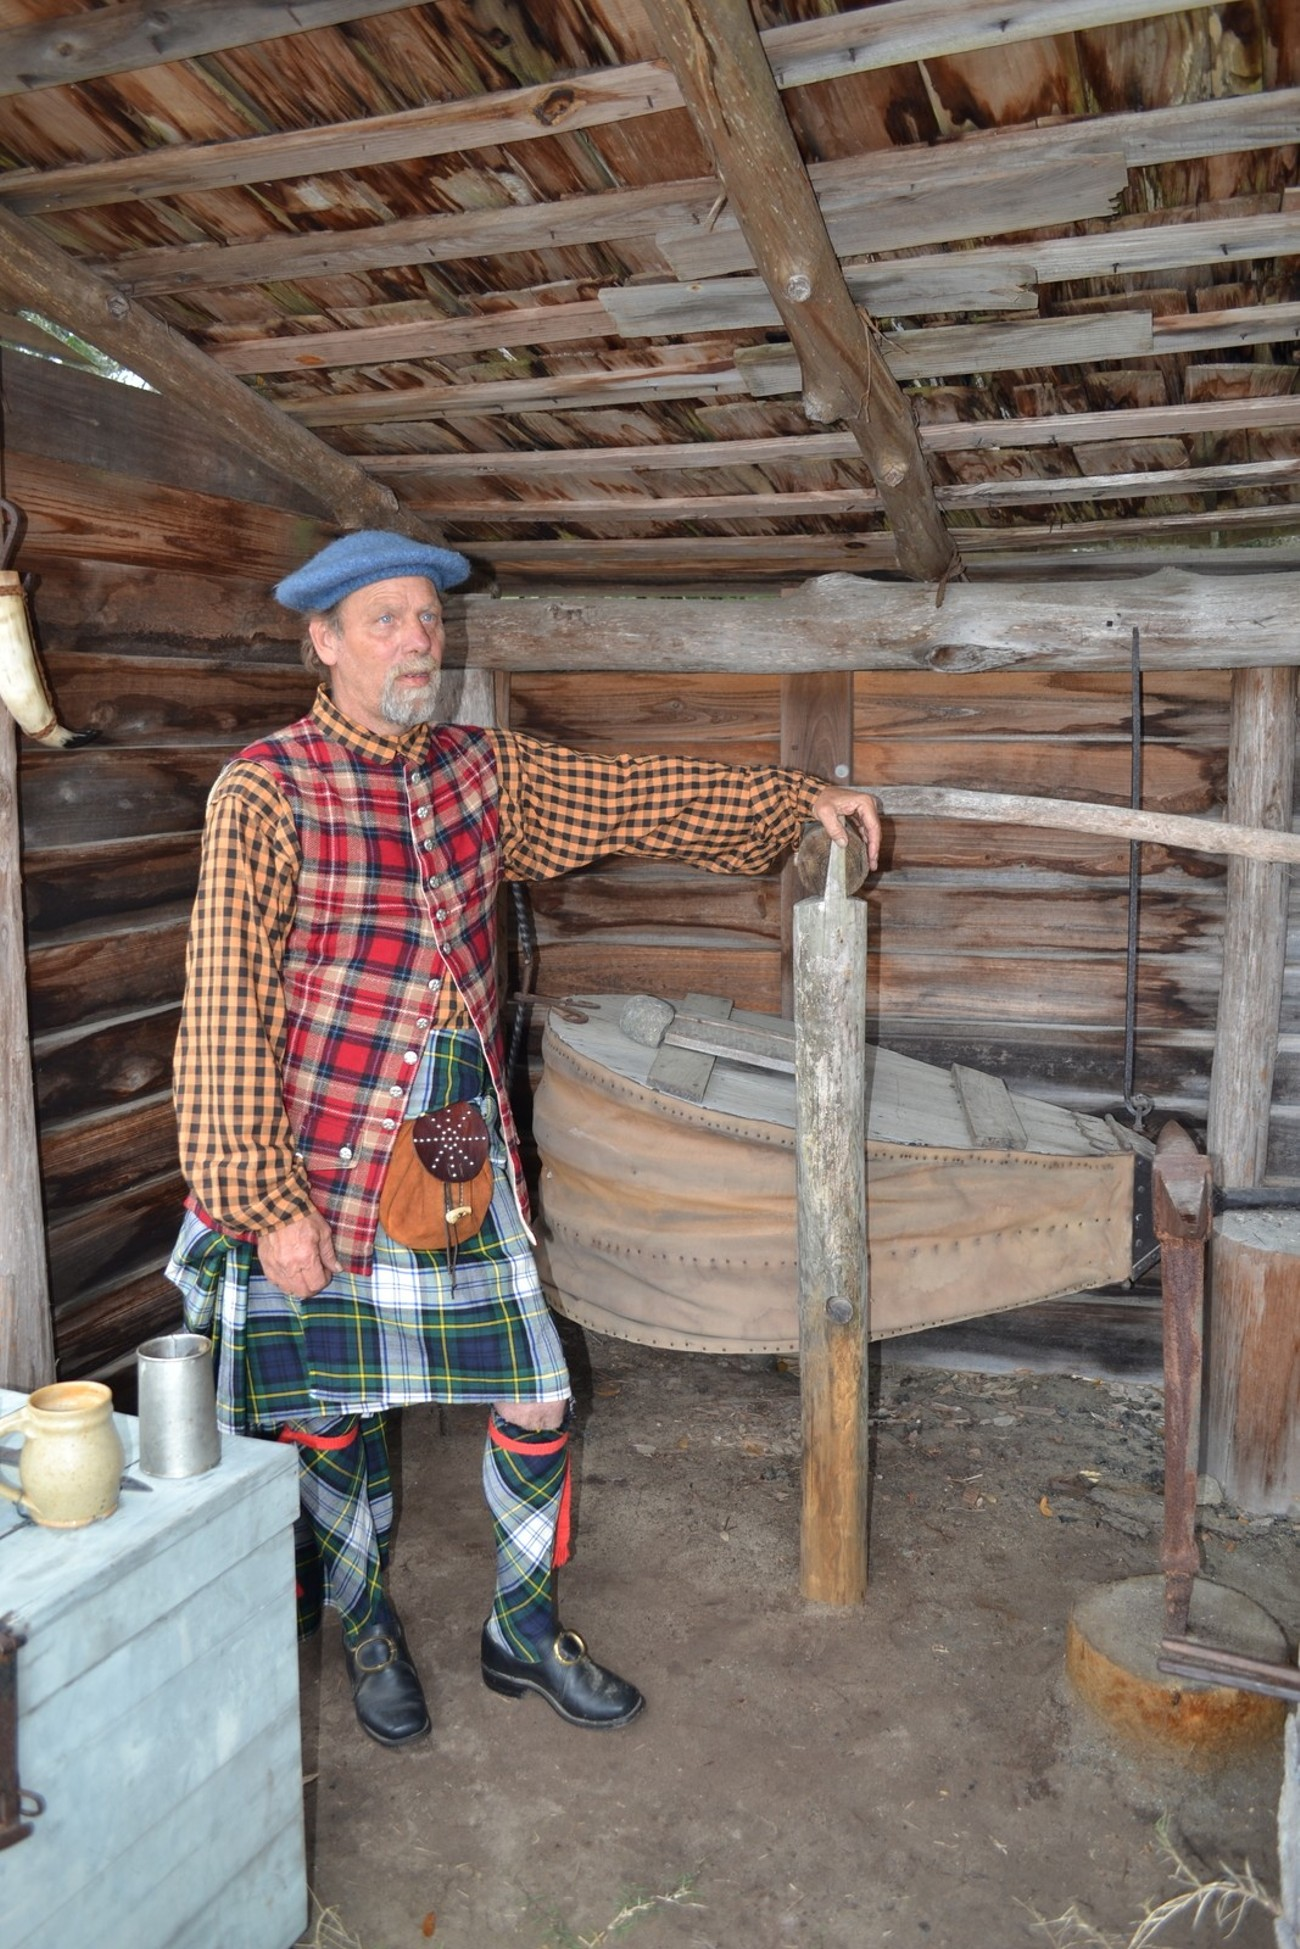 Spent the day at Fort St. George Darien GA.. Members of the Re-enactment society dress in the uniform of the Scottish Highlands of the times. This gentleman was standing in the blacksmith beside the bellows and describing what life was like then.